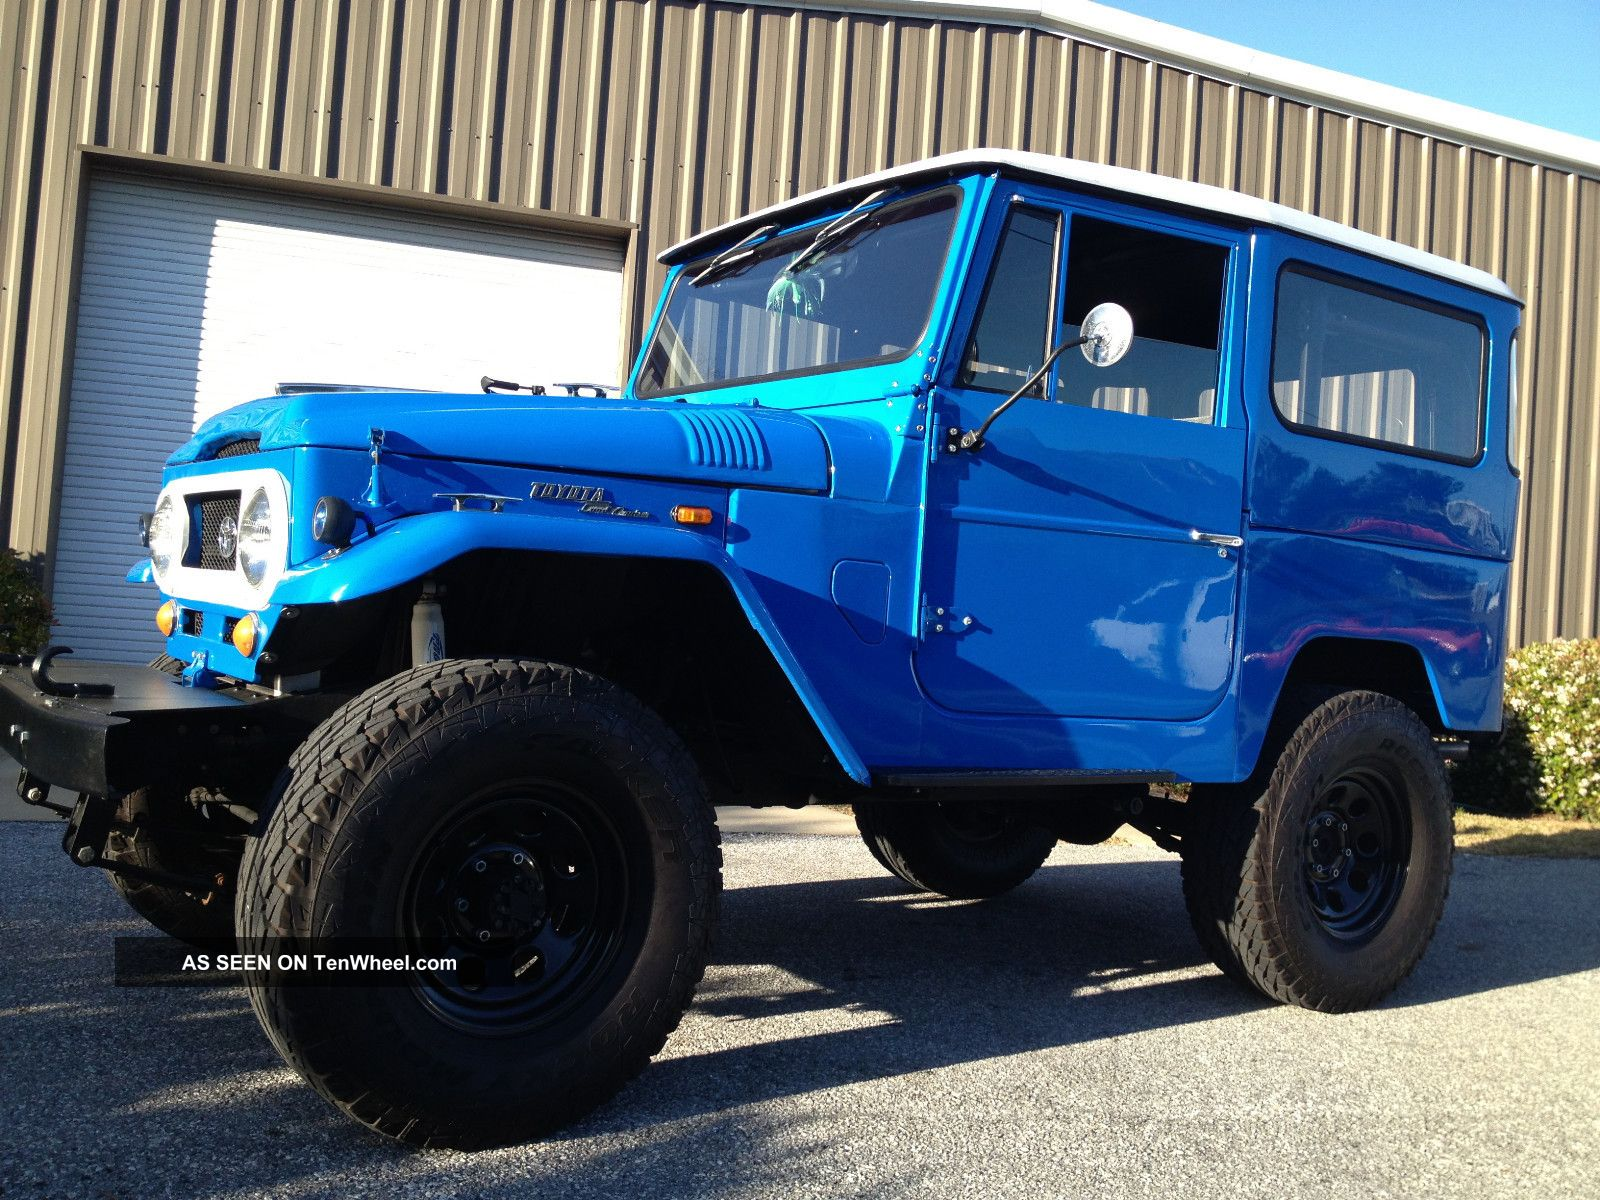 1969 Fj40 Toyota Land Cruiser, Blue With White Hard Top, Frame Off